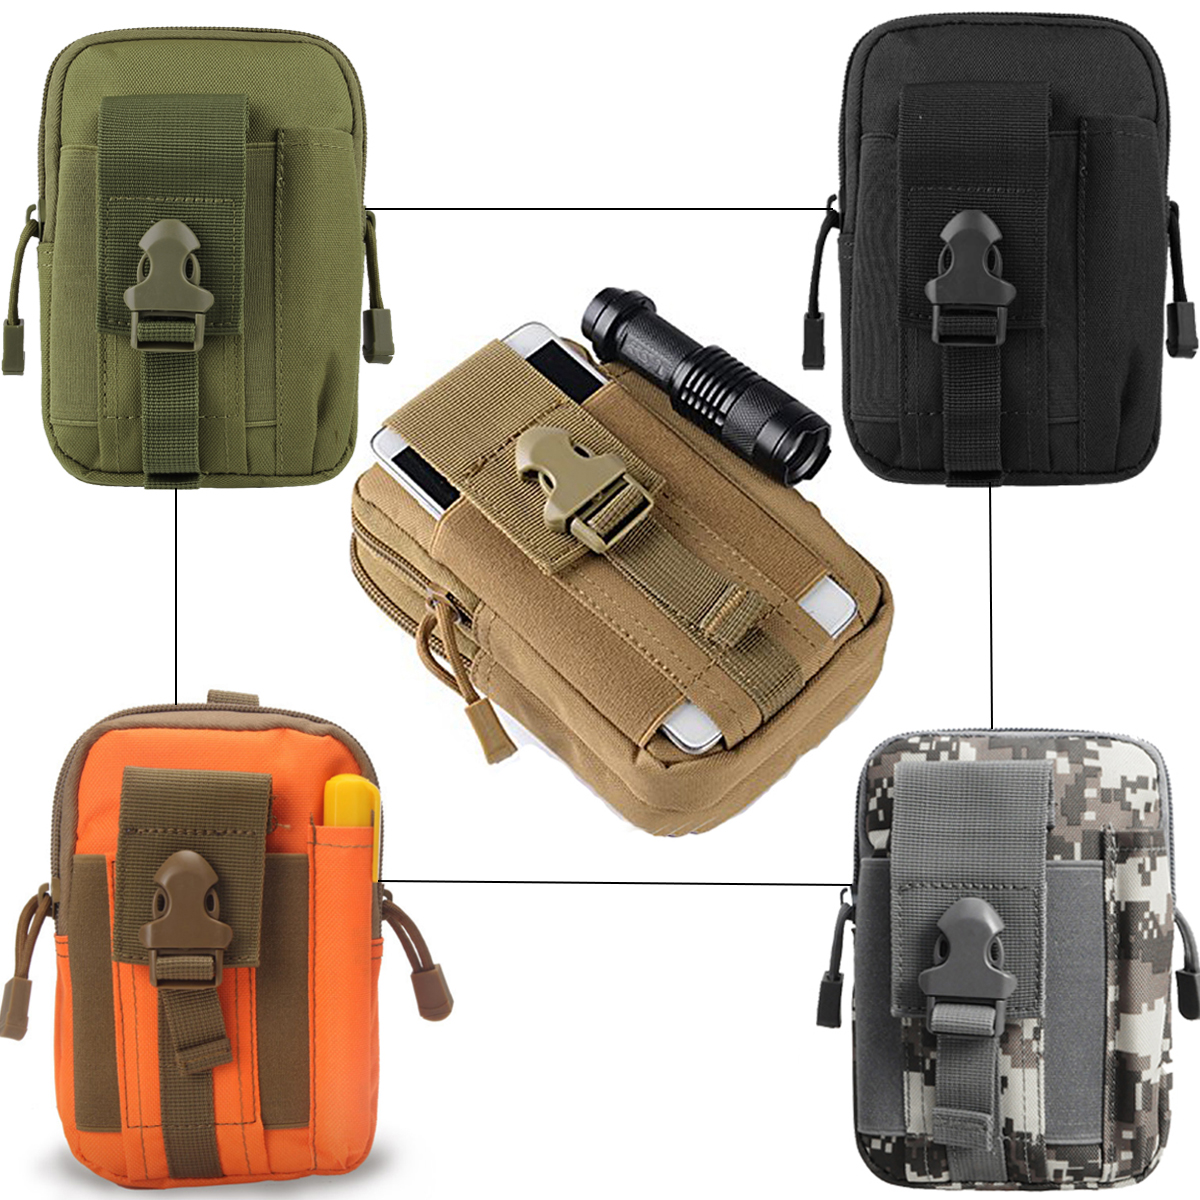 Tactical Molle Pockets Pouch Waist Belt Wallet Universal Holster Military Pack Outdoor Camping Climbing  Purse Hunting Phone Bag